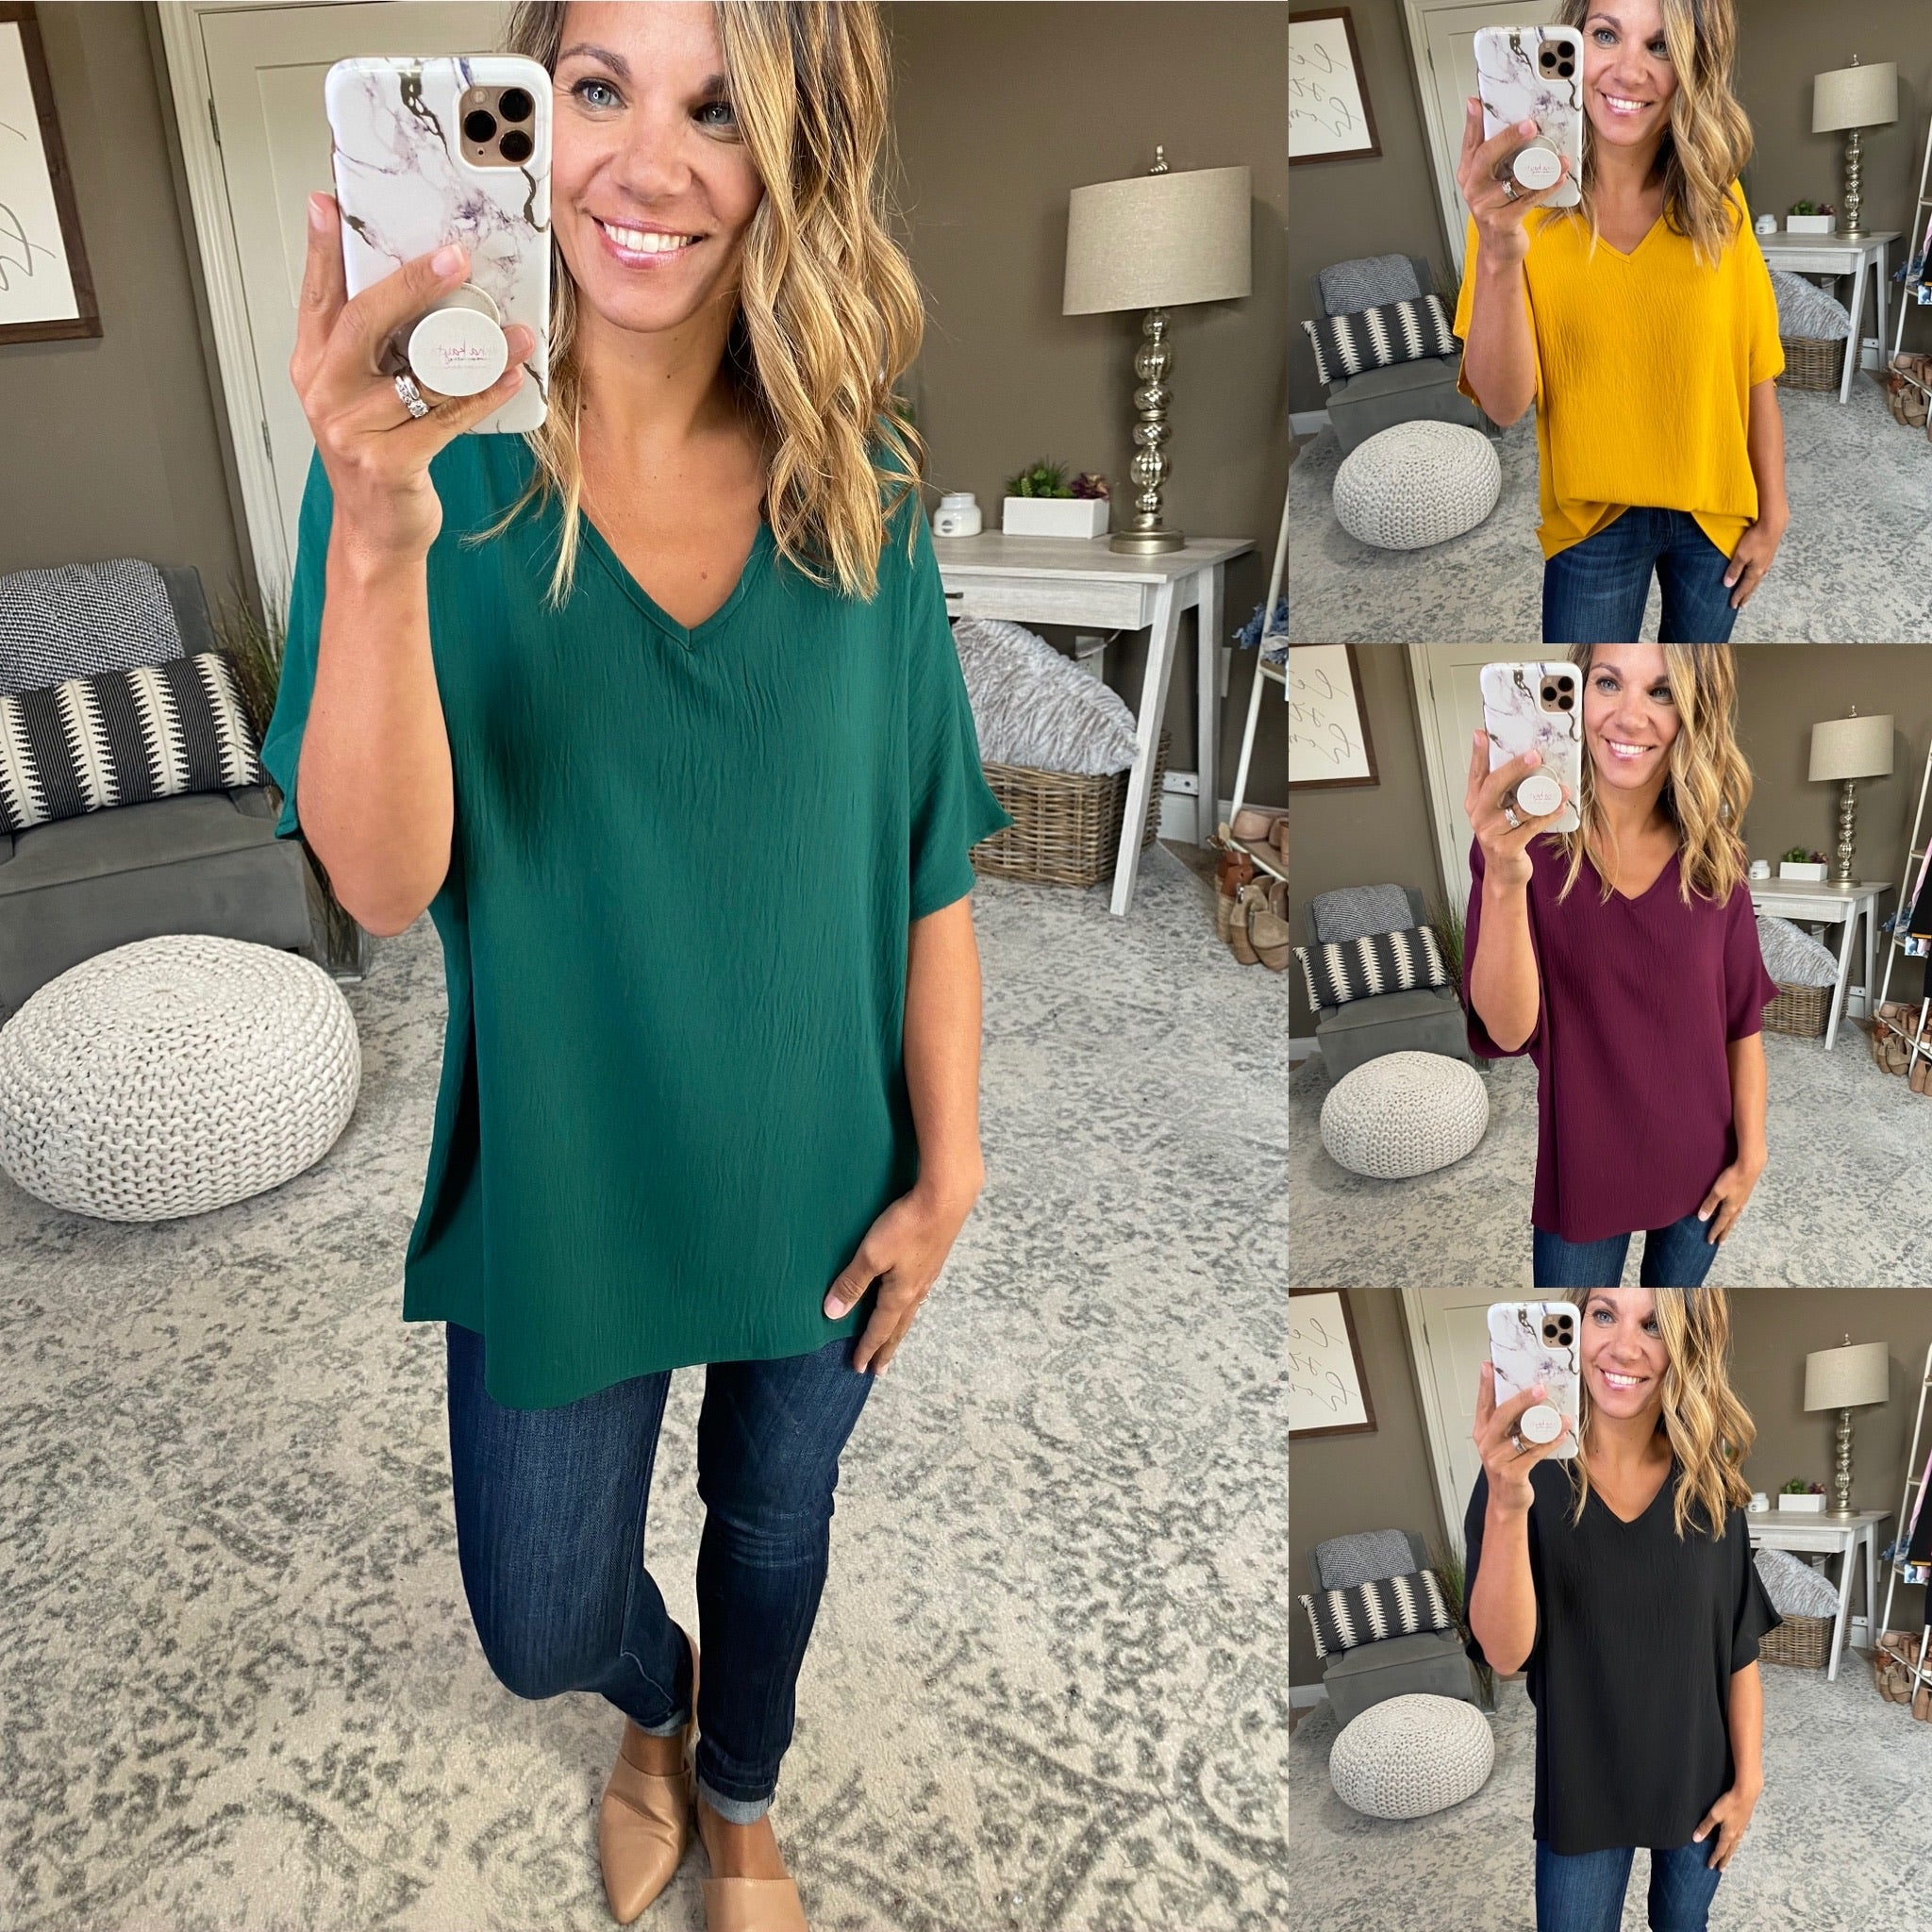 Open Your Eyes V-Neck Textured Tee - Multiple Options